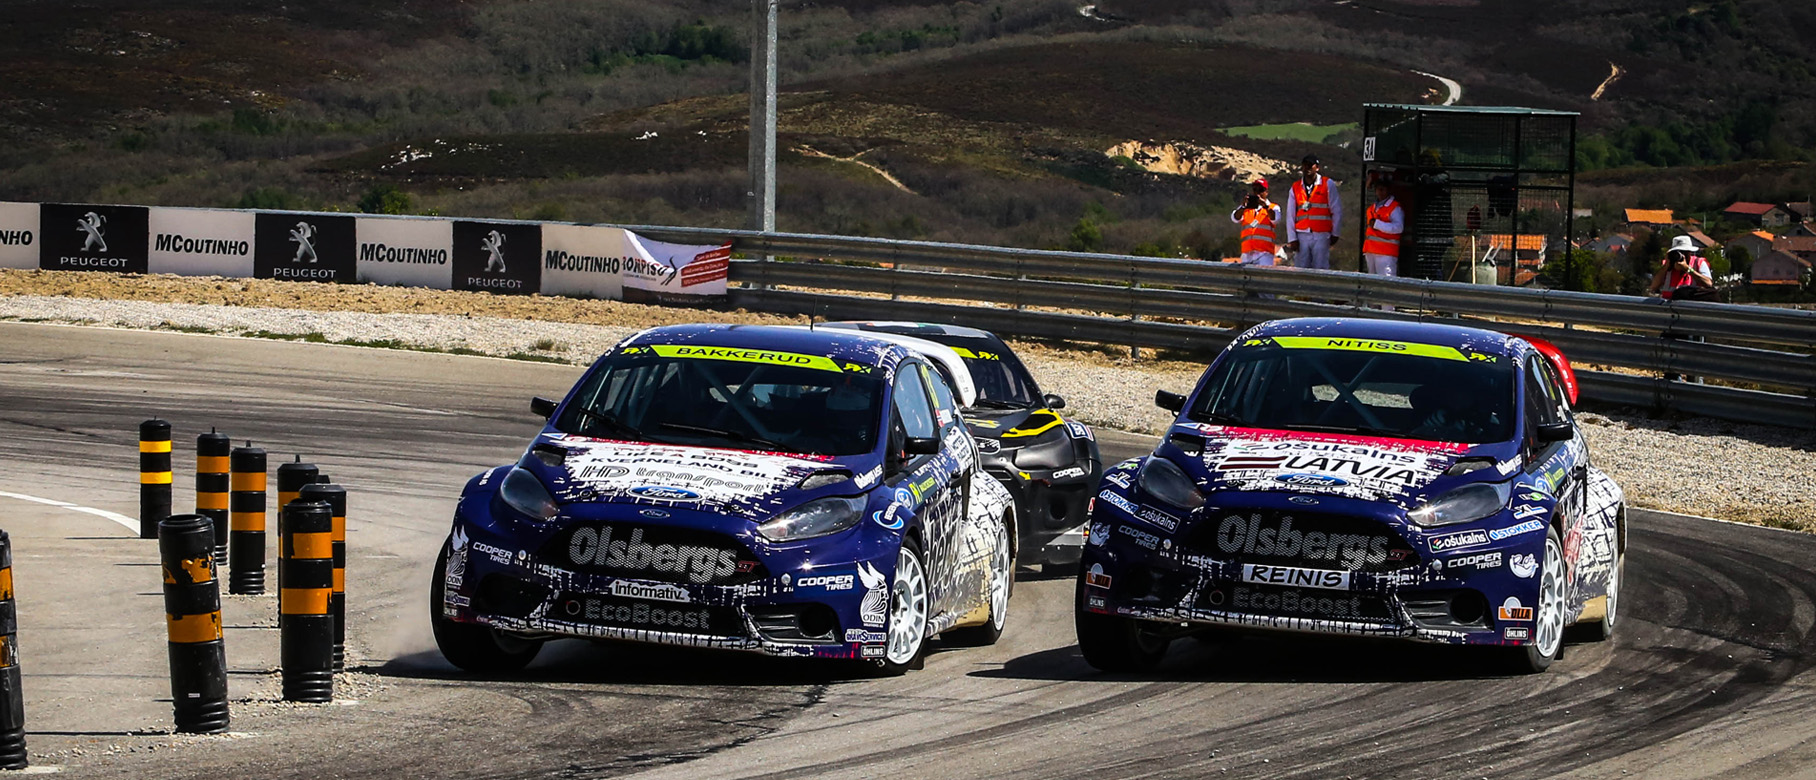 Double podium for Olsbergs MSE Ford at World Rallycross Championship in Portugal